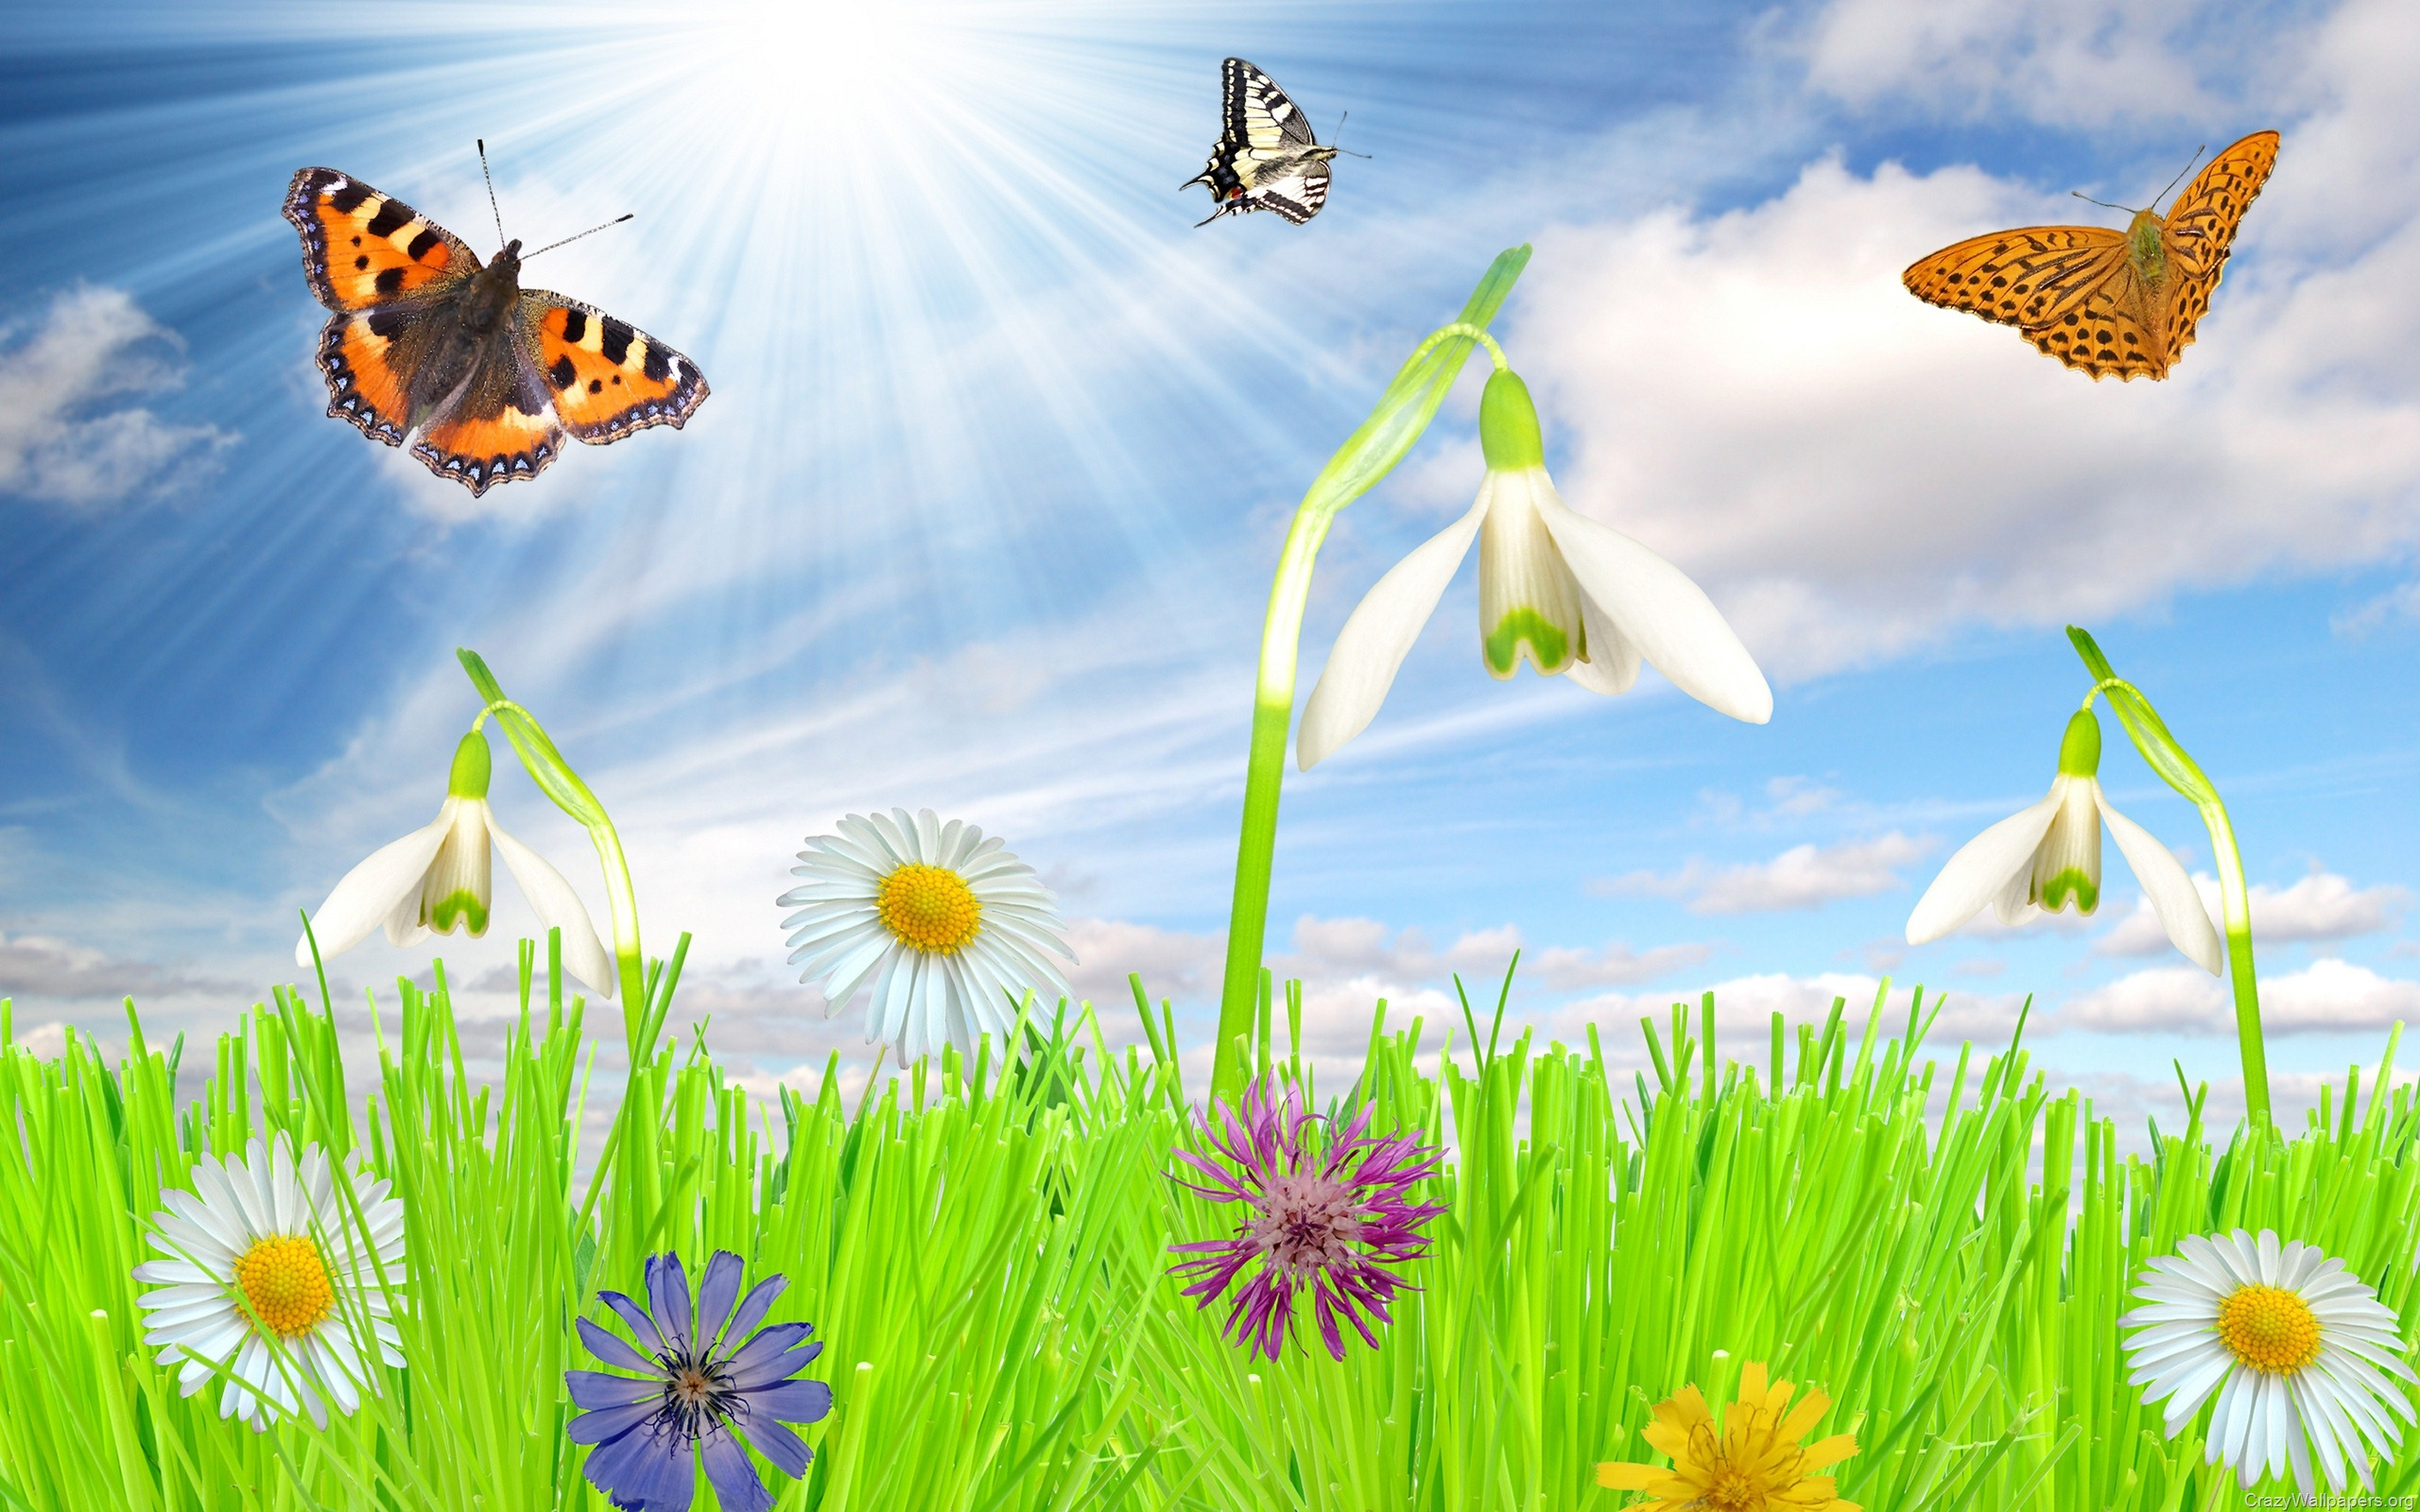 Spring Wallpapers And Screensavers 2560x1600